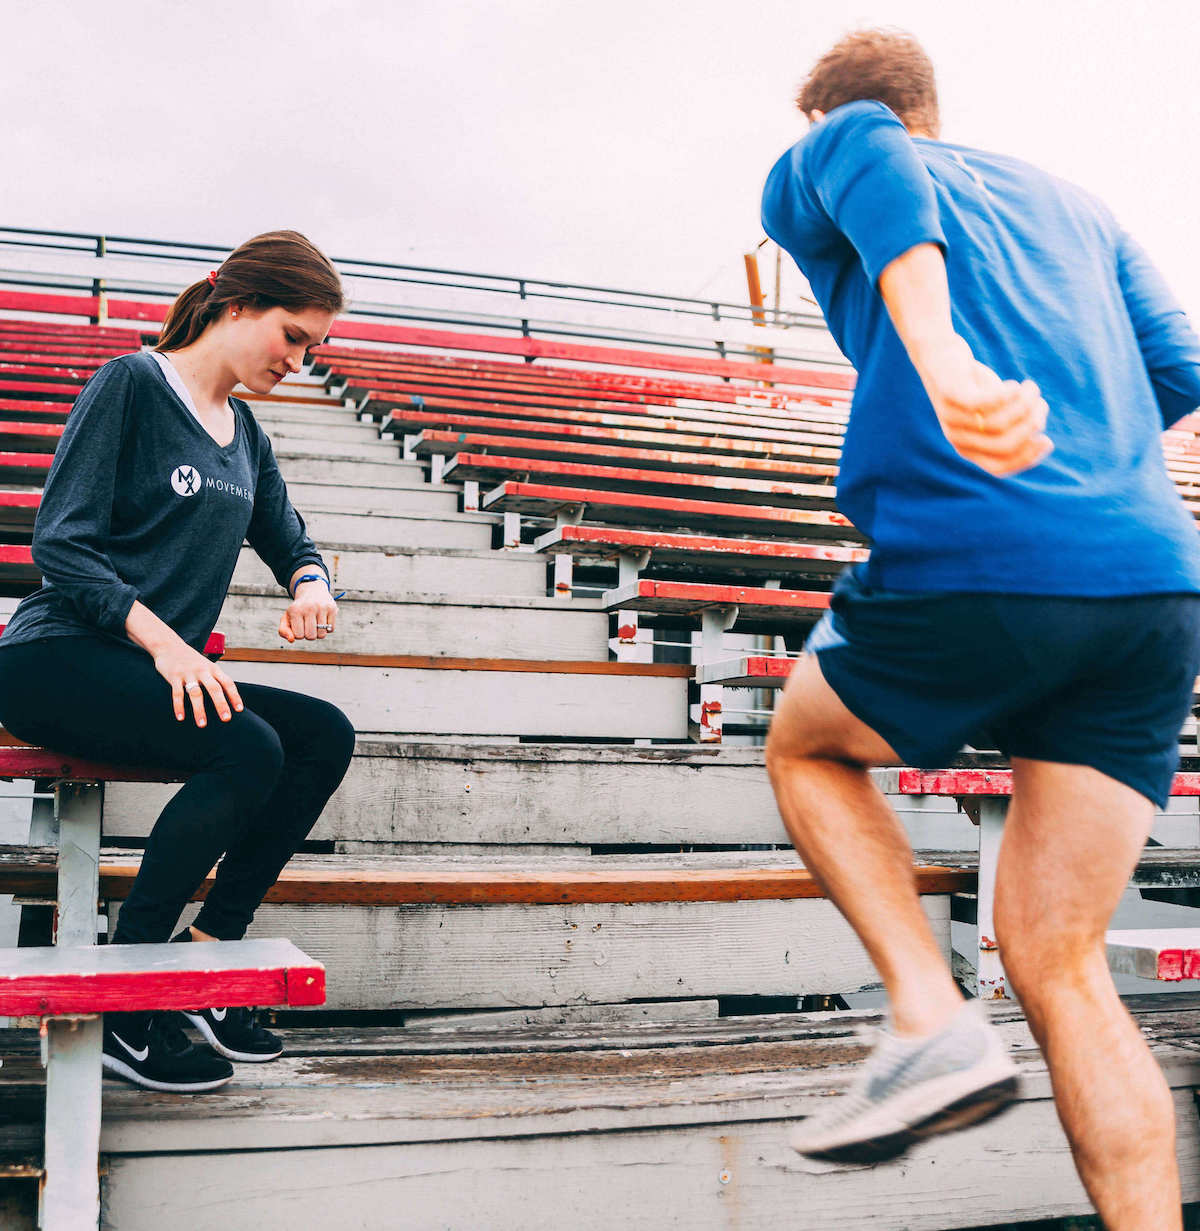 Man training and running with physical therapist on stairs